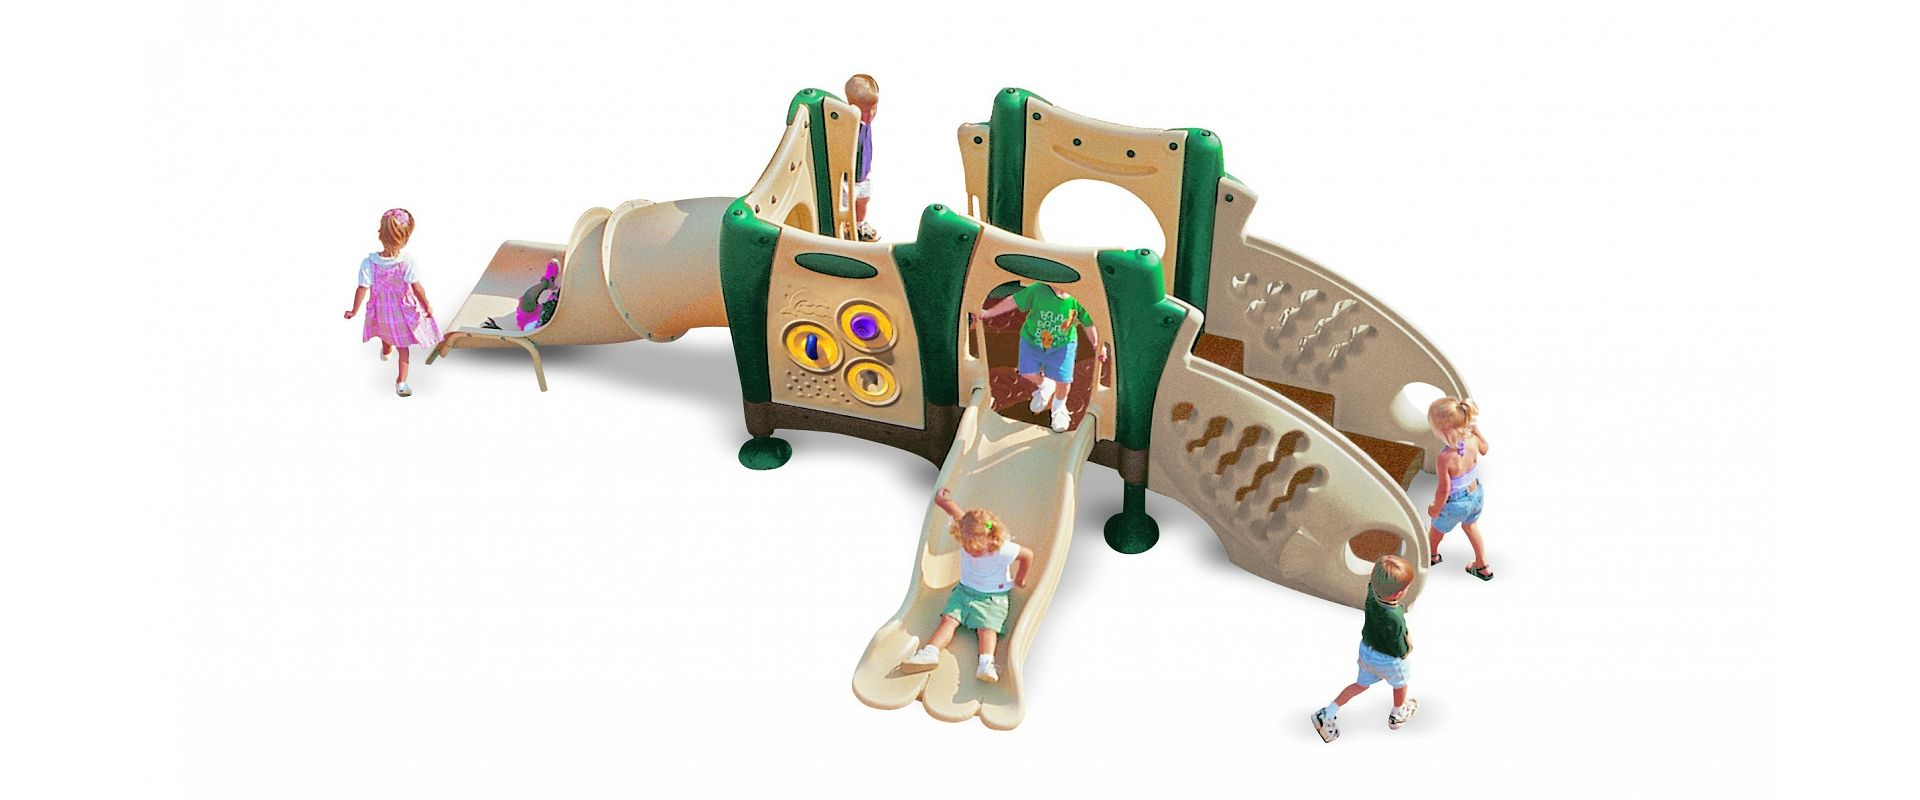 Toddler Playground 2 has been a top selling playground for years.